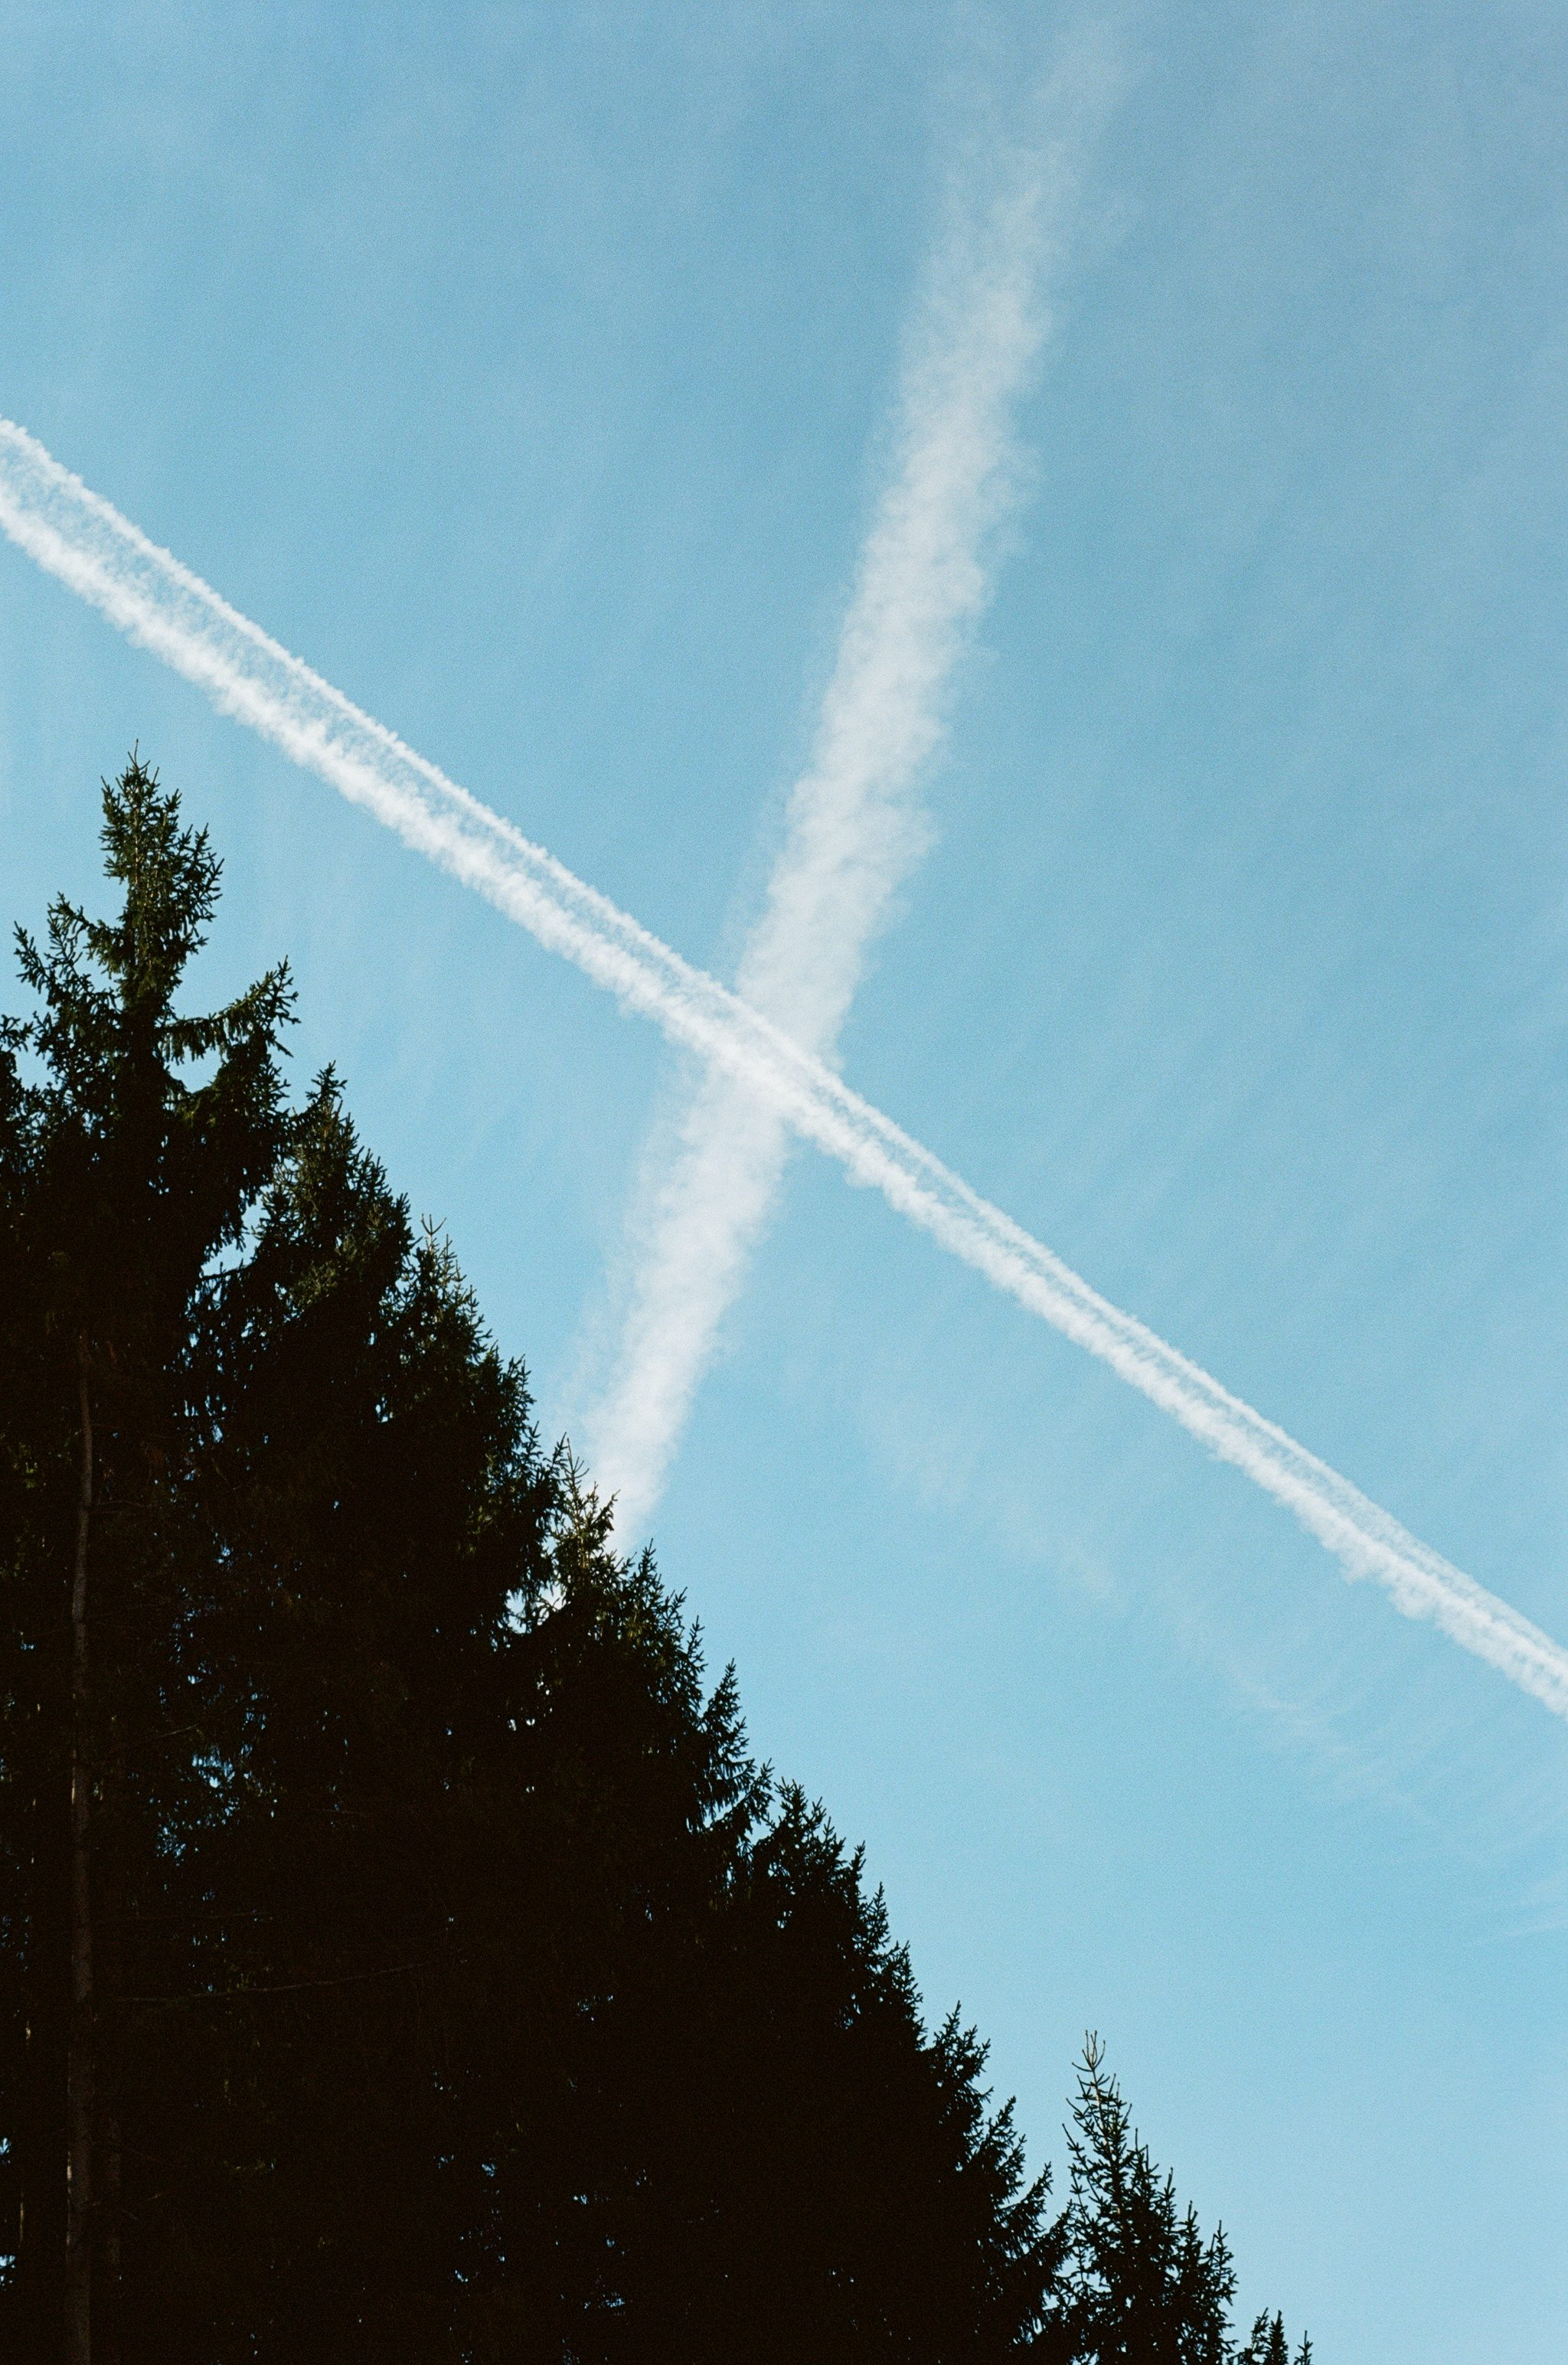 Fall Impressions 2 - Contrails in the sky